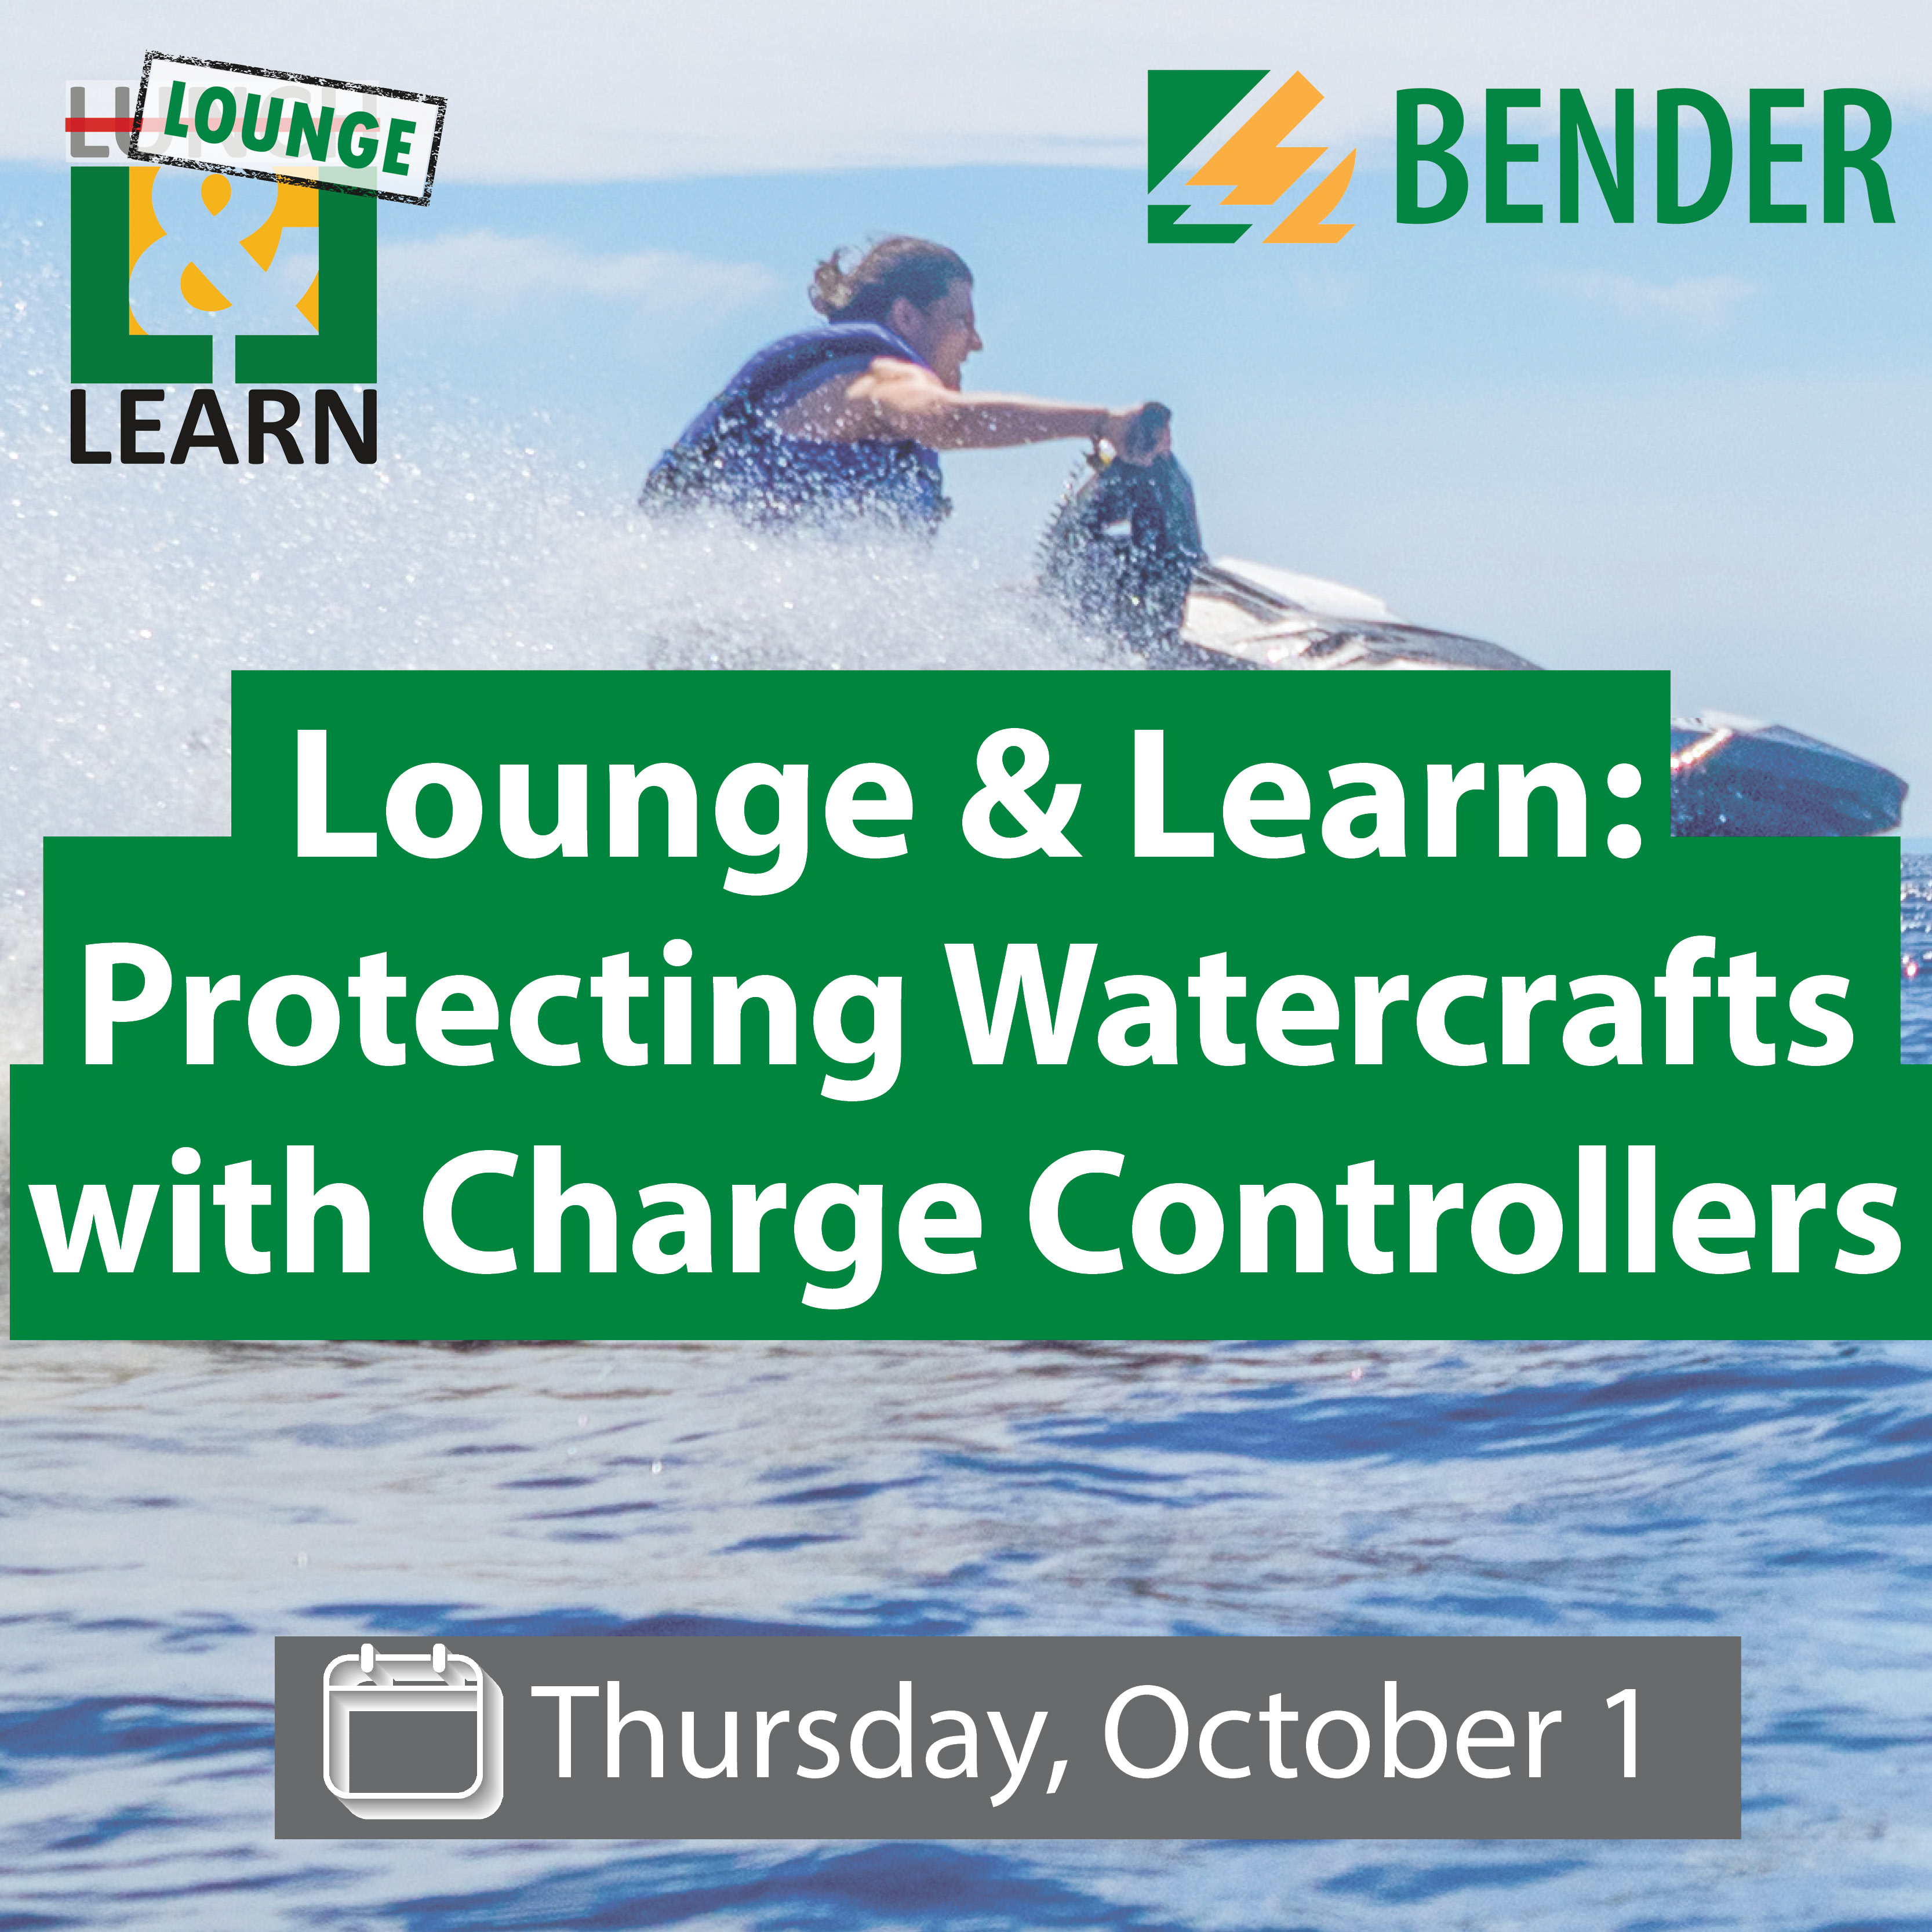 Lounge & Learn: Protecting Watercrafts with Charge Controllers